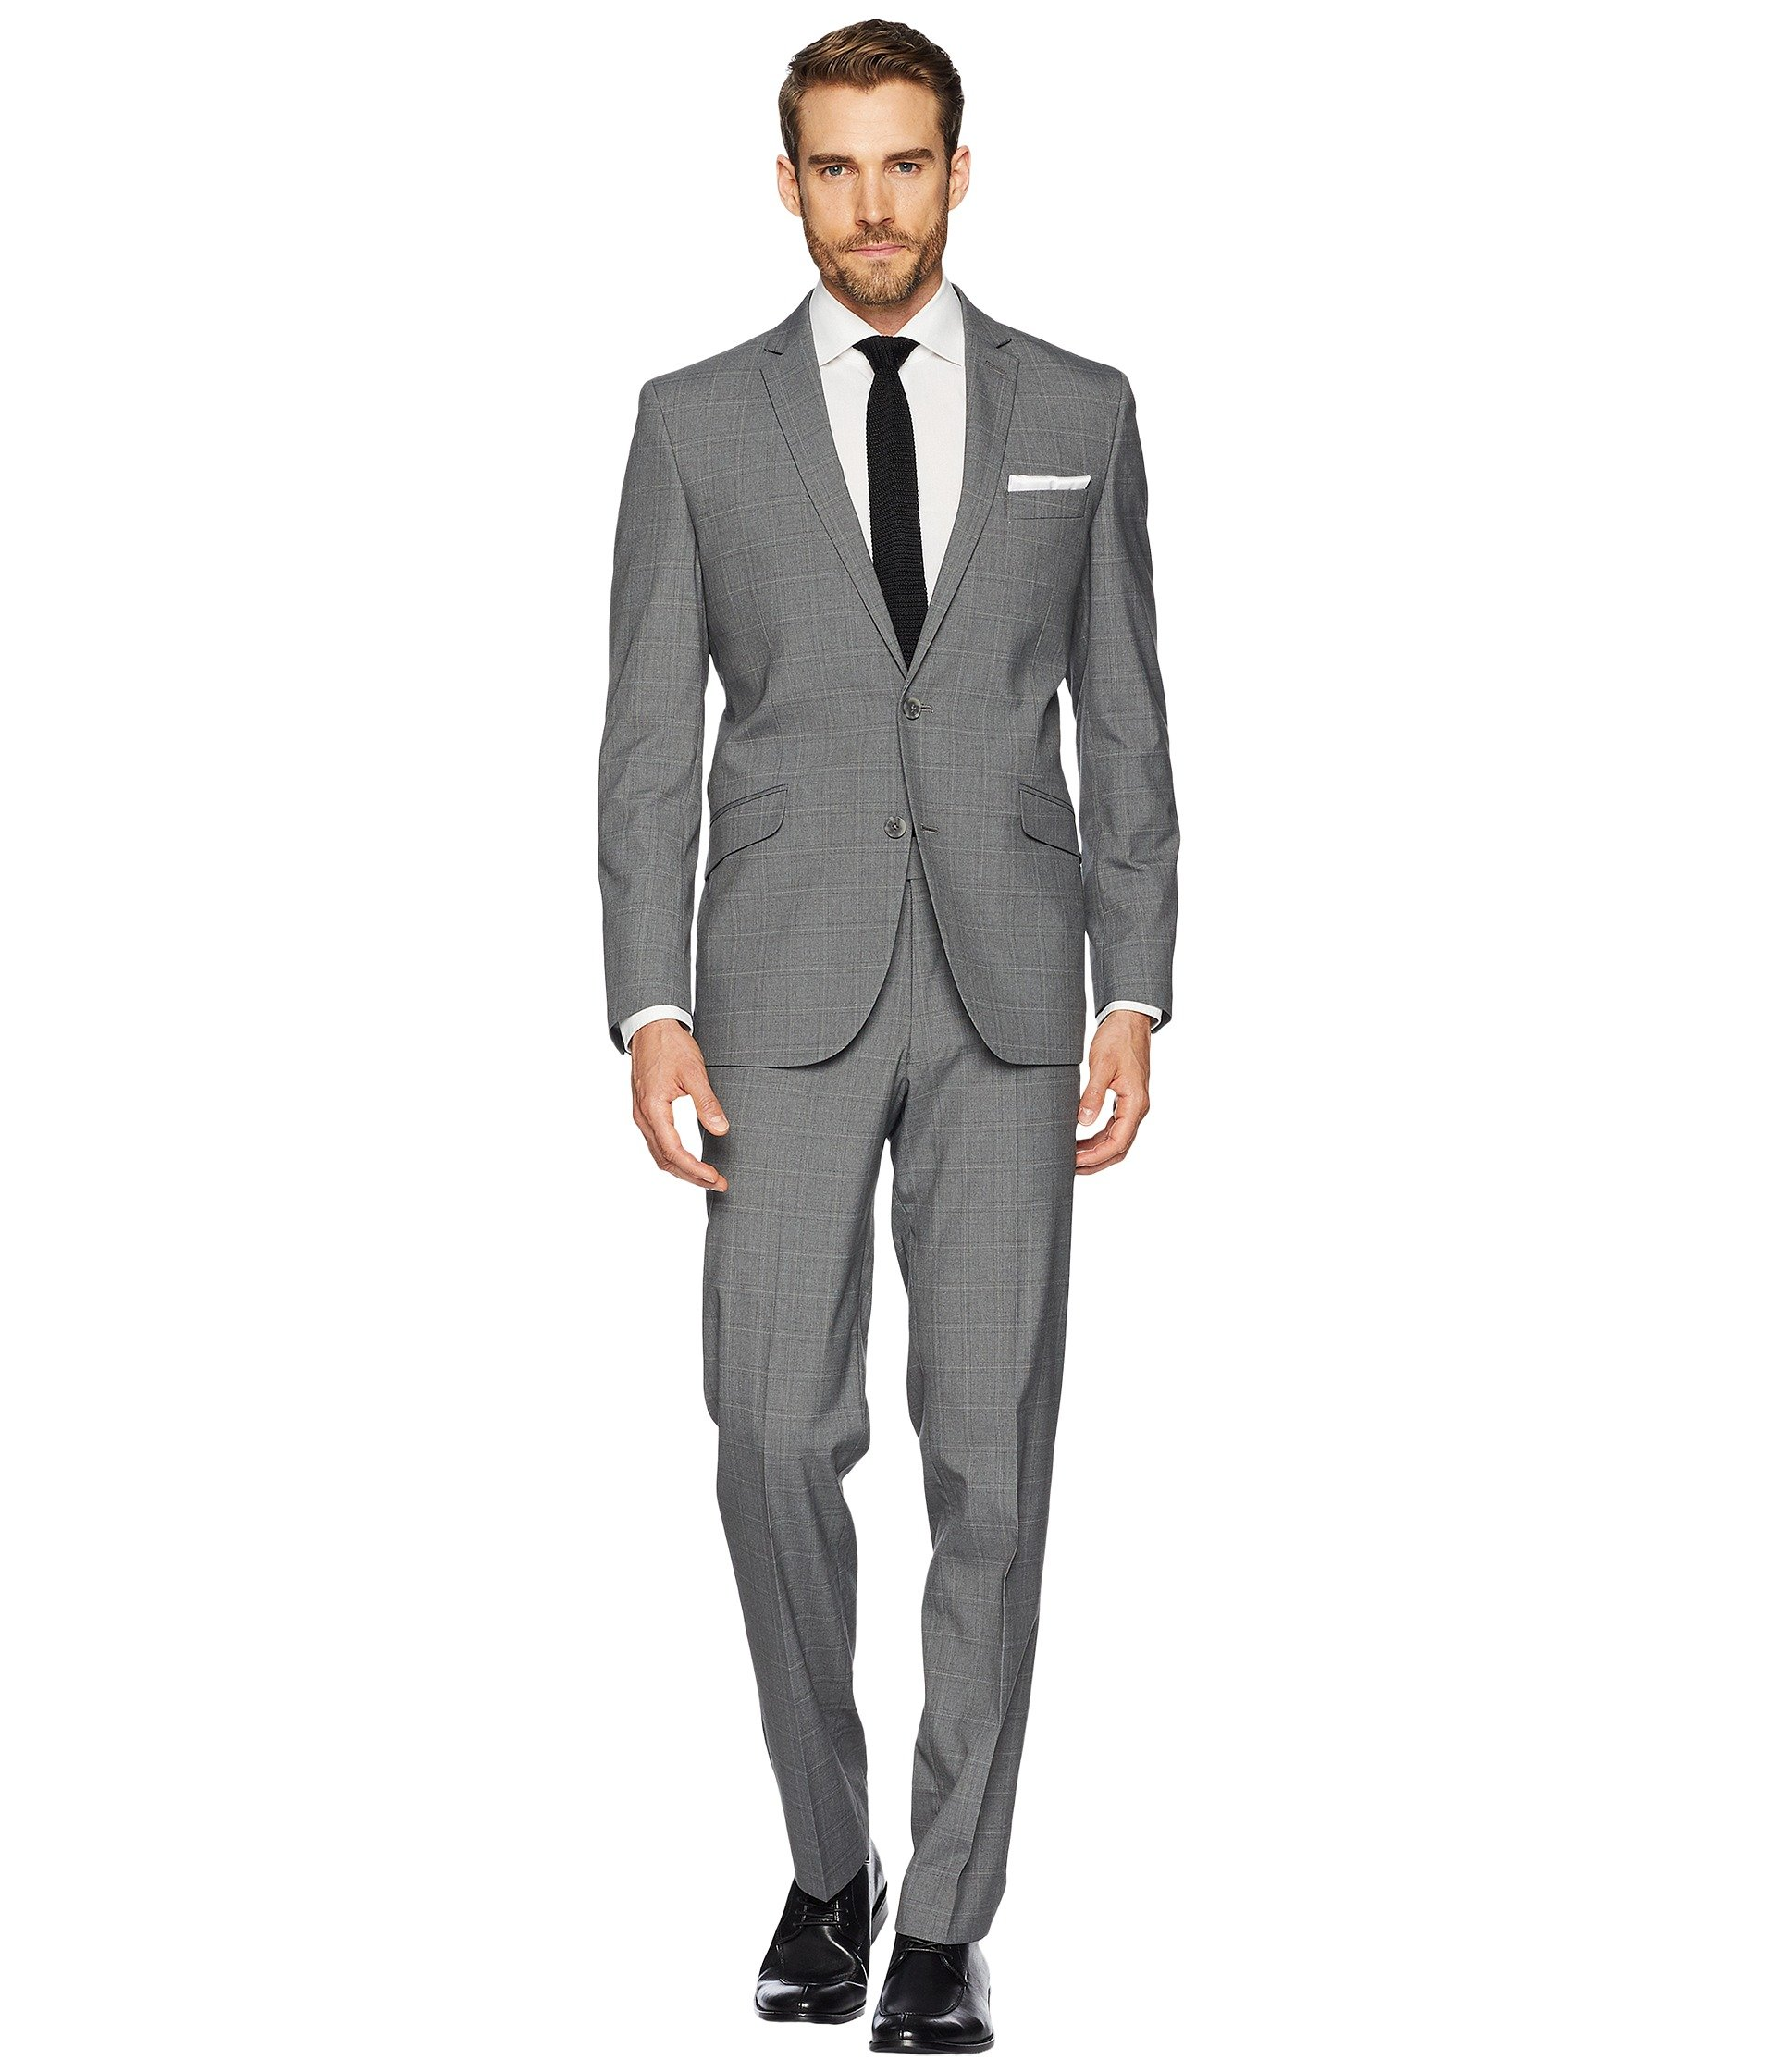 Vestido para Hombre Kenneth Cole Reaction Stretch Slim Fit Window Pane Suit  + Kenneth Cole Reaction en VeoyCompro.net